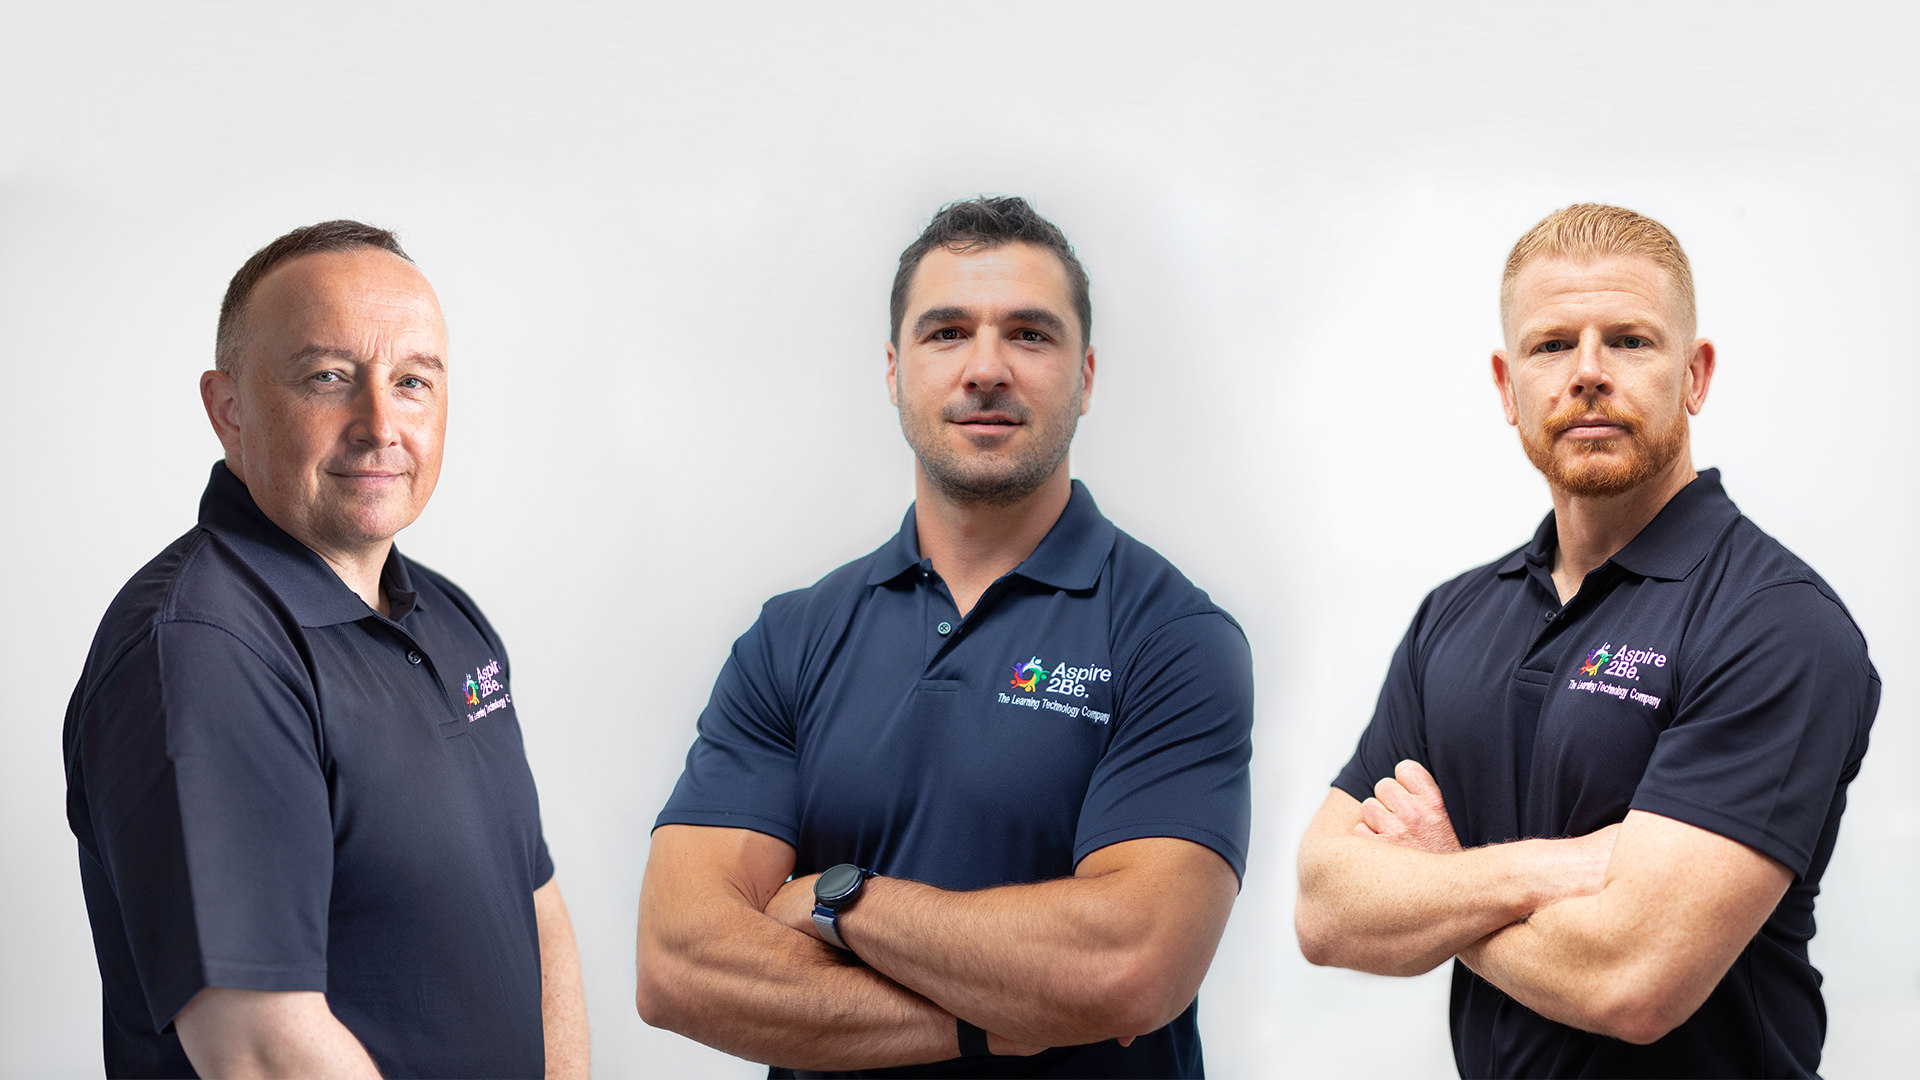 Growth at Aspire 2Be sees promotions to management team